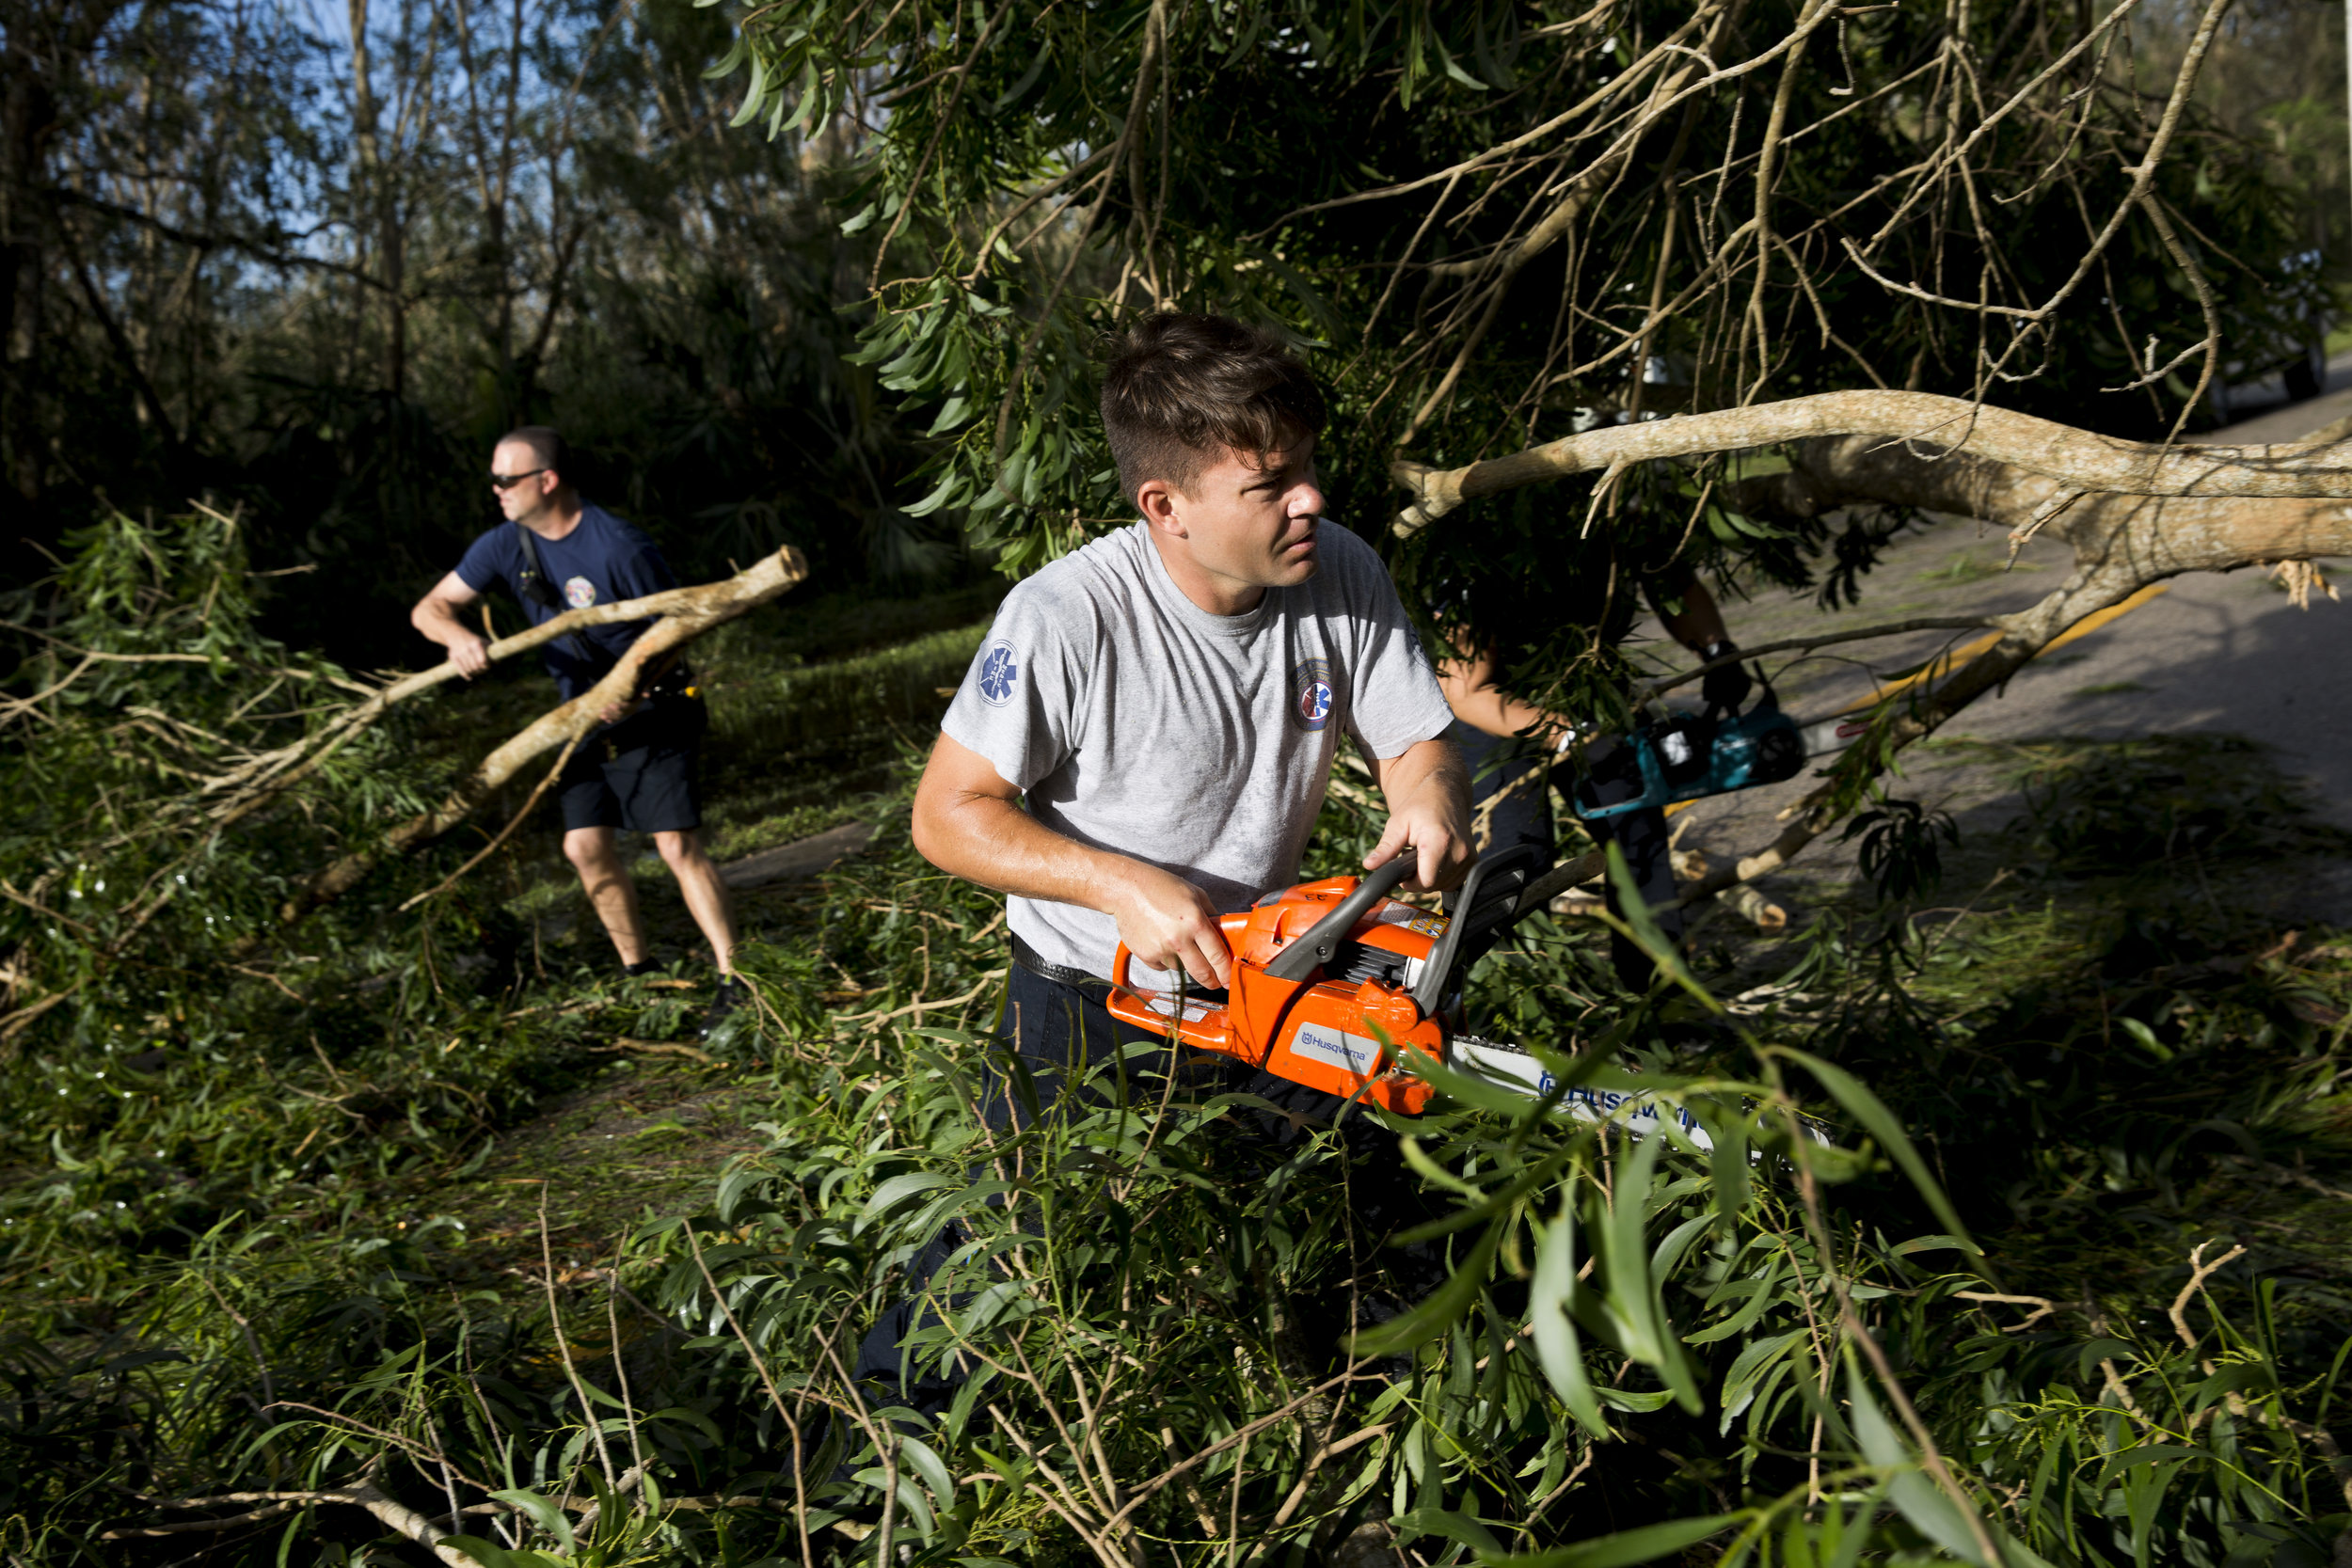 0911_LF_HURRICANE IRMA DAMAGE 16.jpg